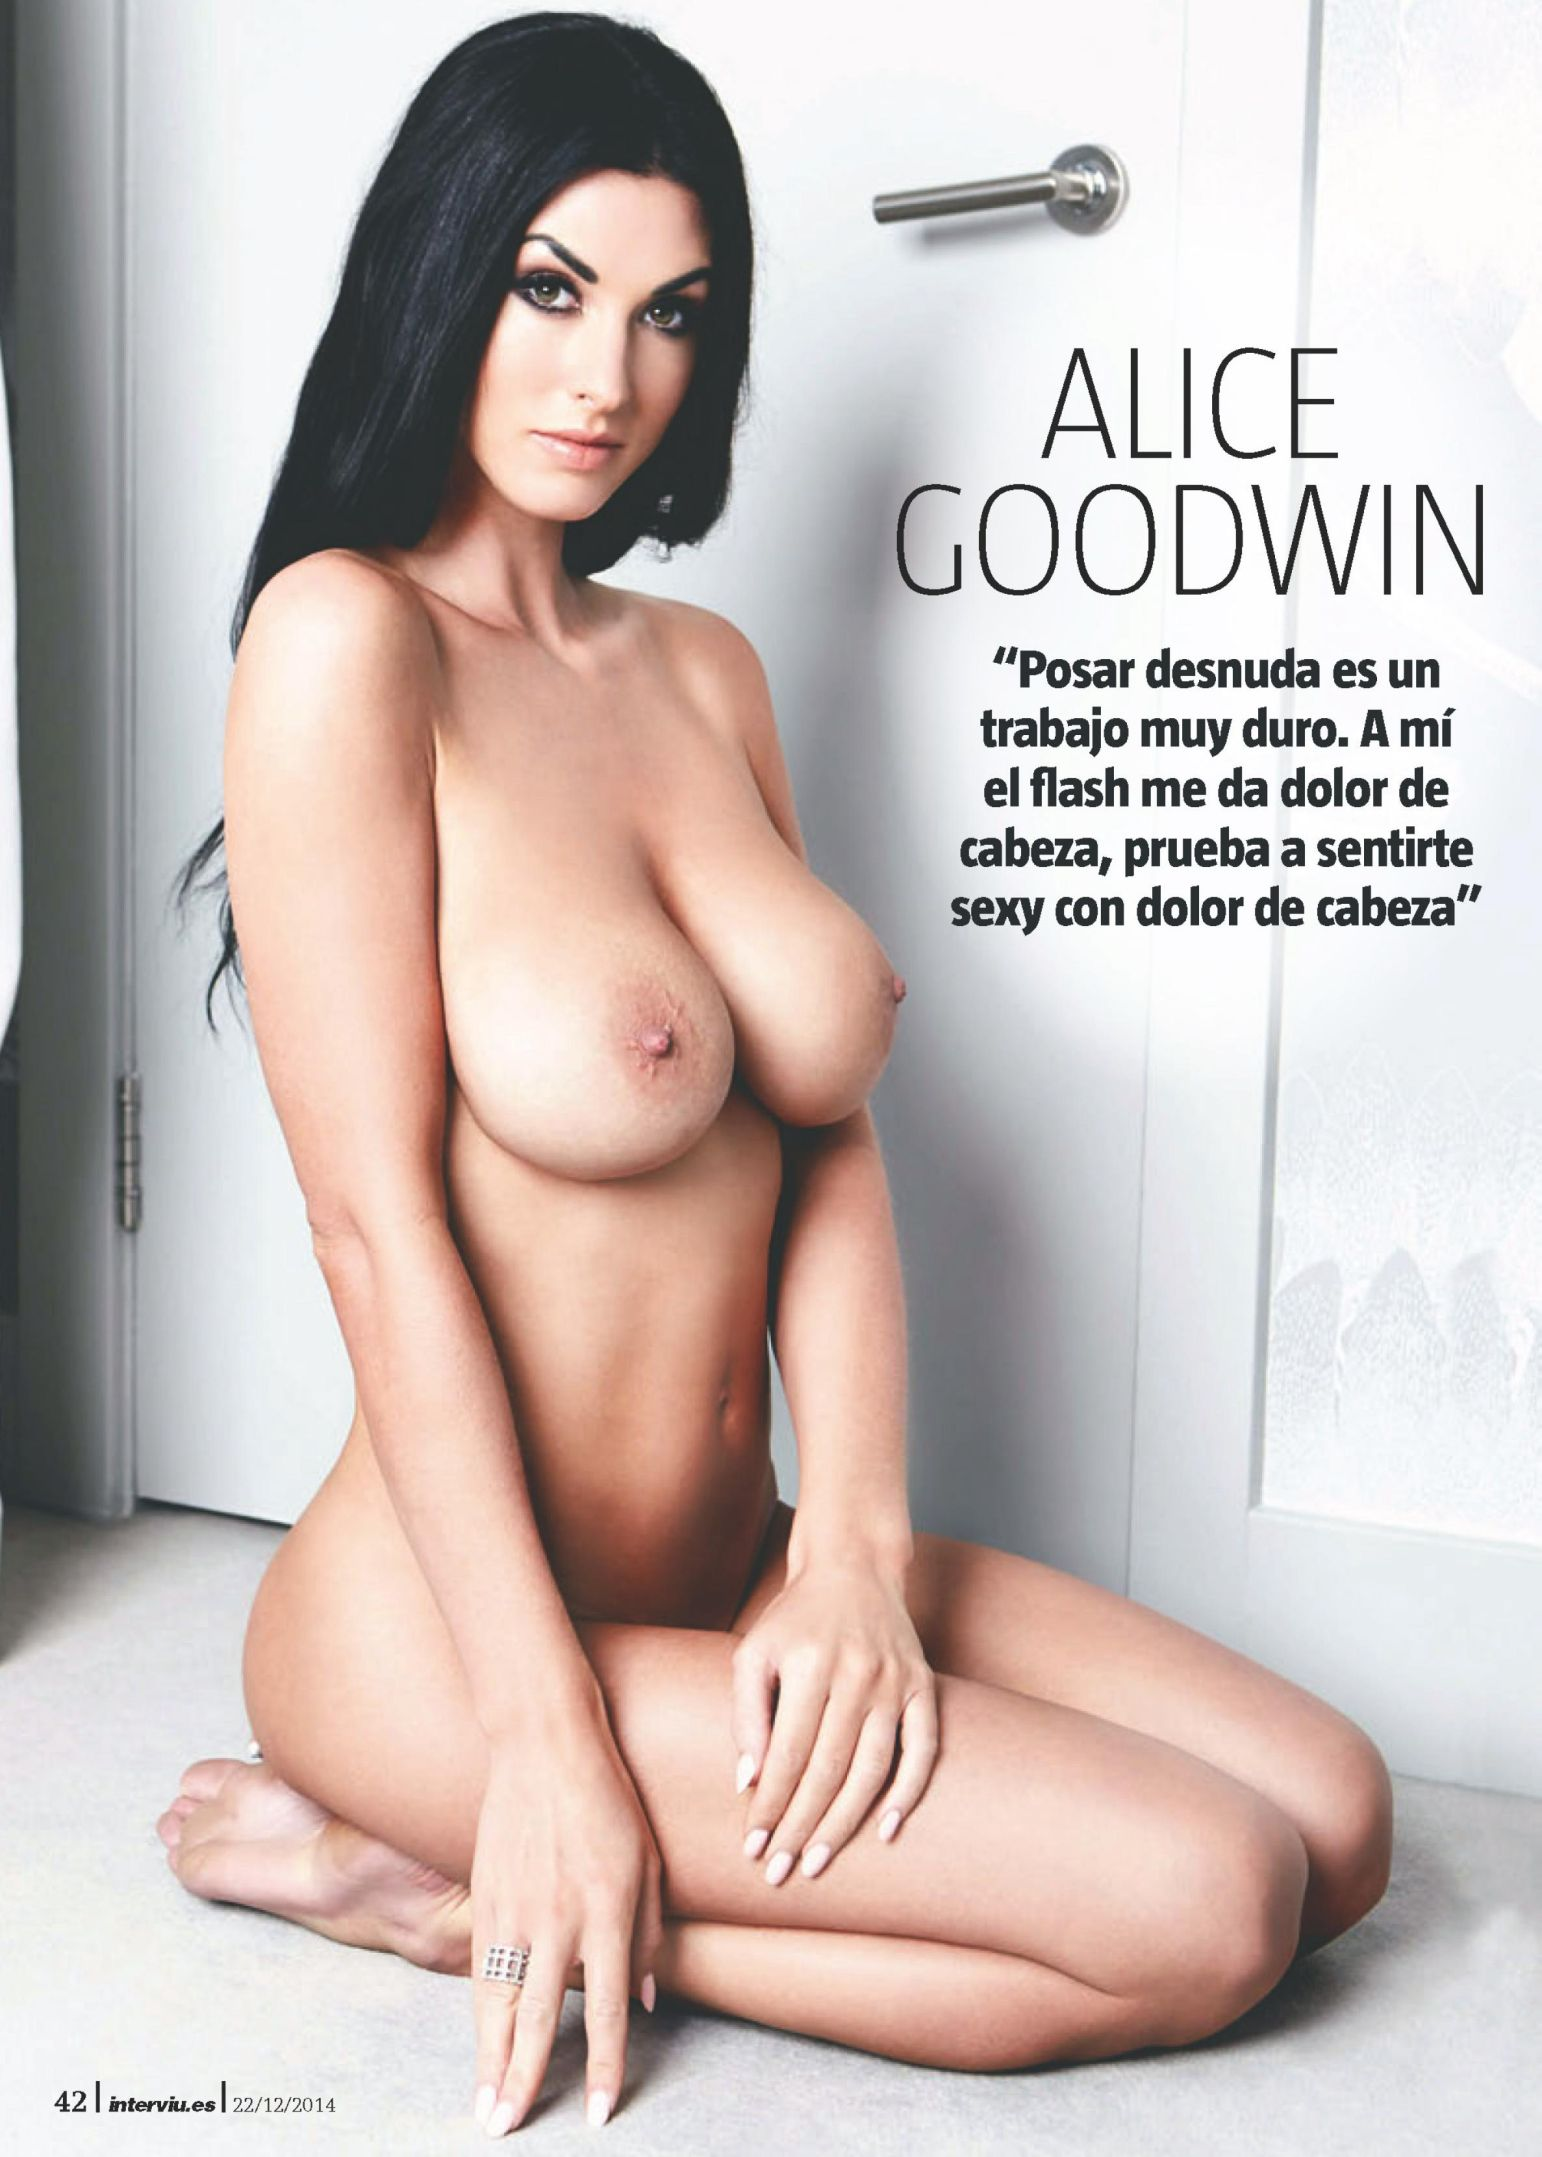 Alice goodwin sex porn hd image downloads adult pic